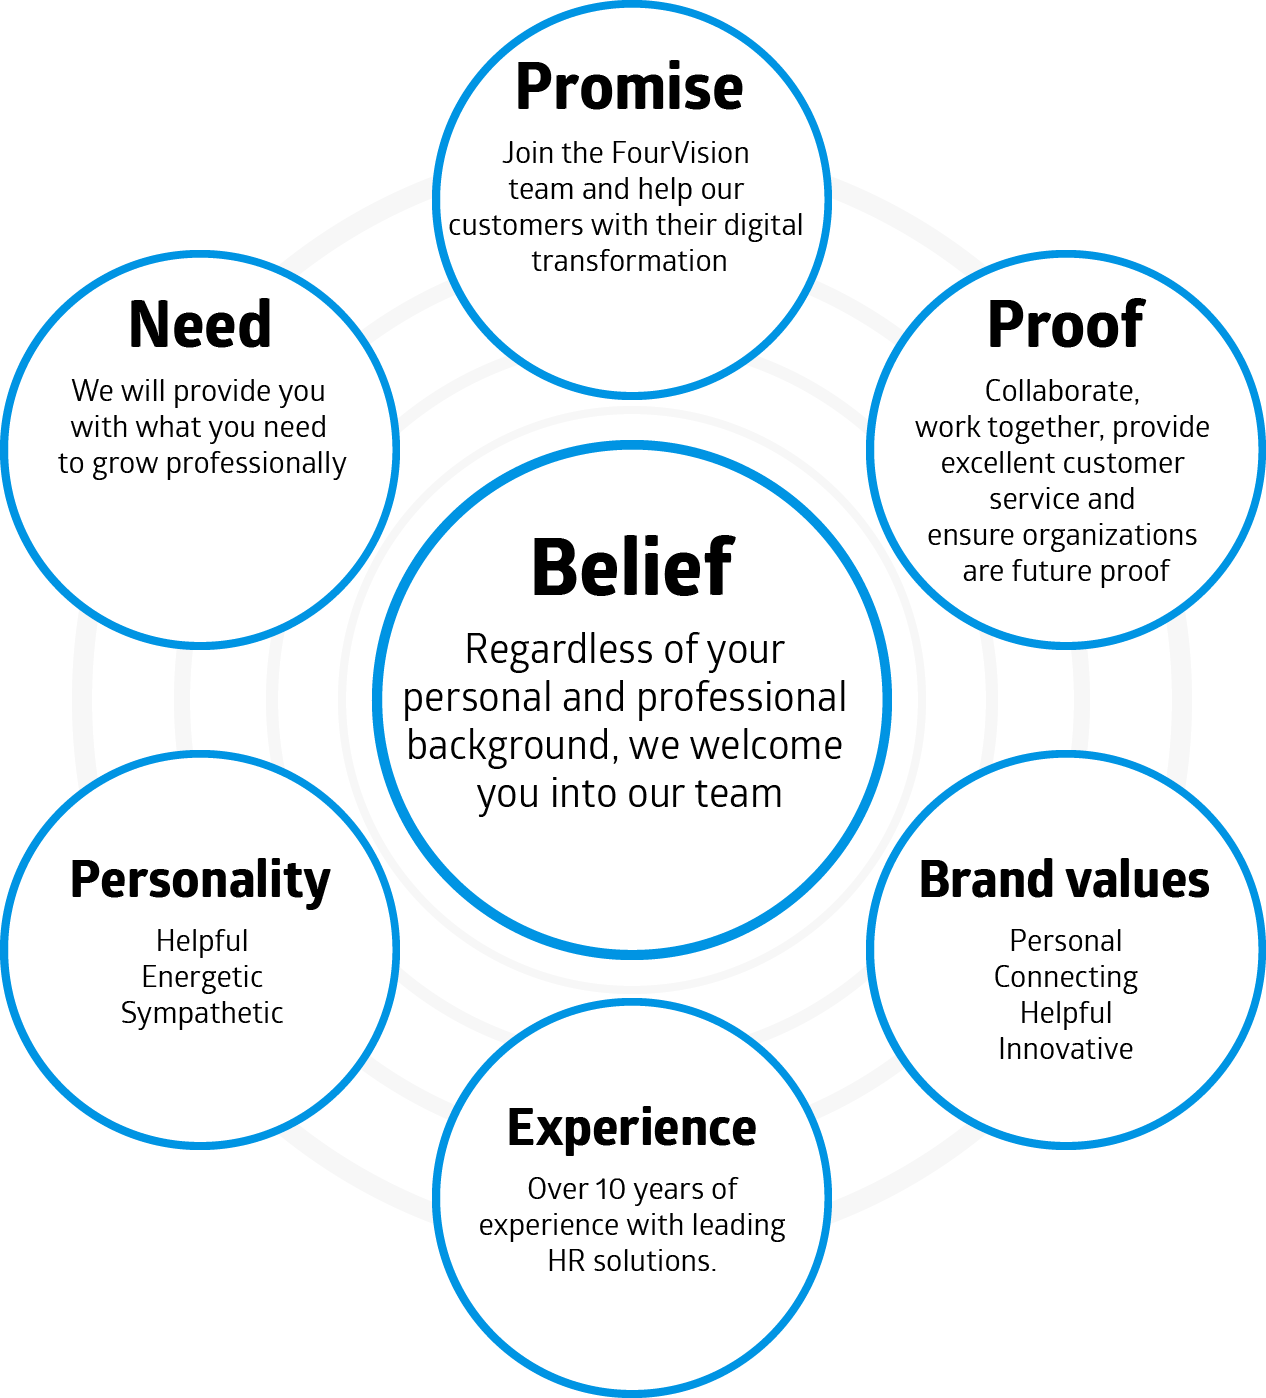 FourVision Belief: Brand values, Experience, Personality, Need, Promise and Future Proof.